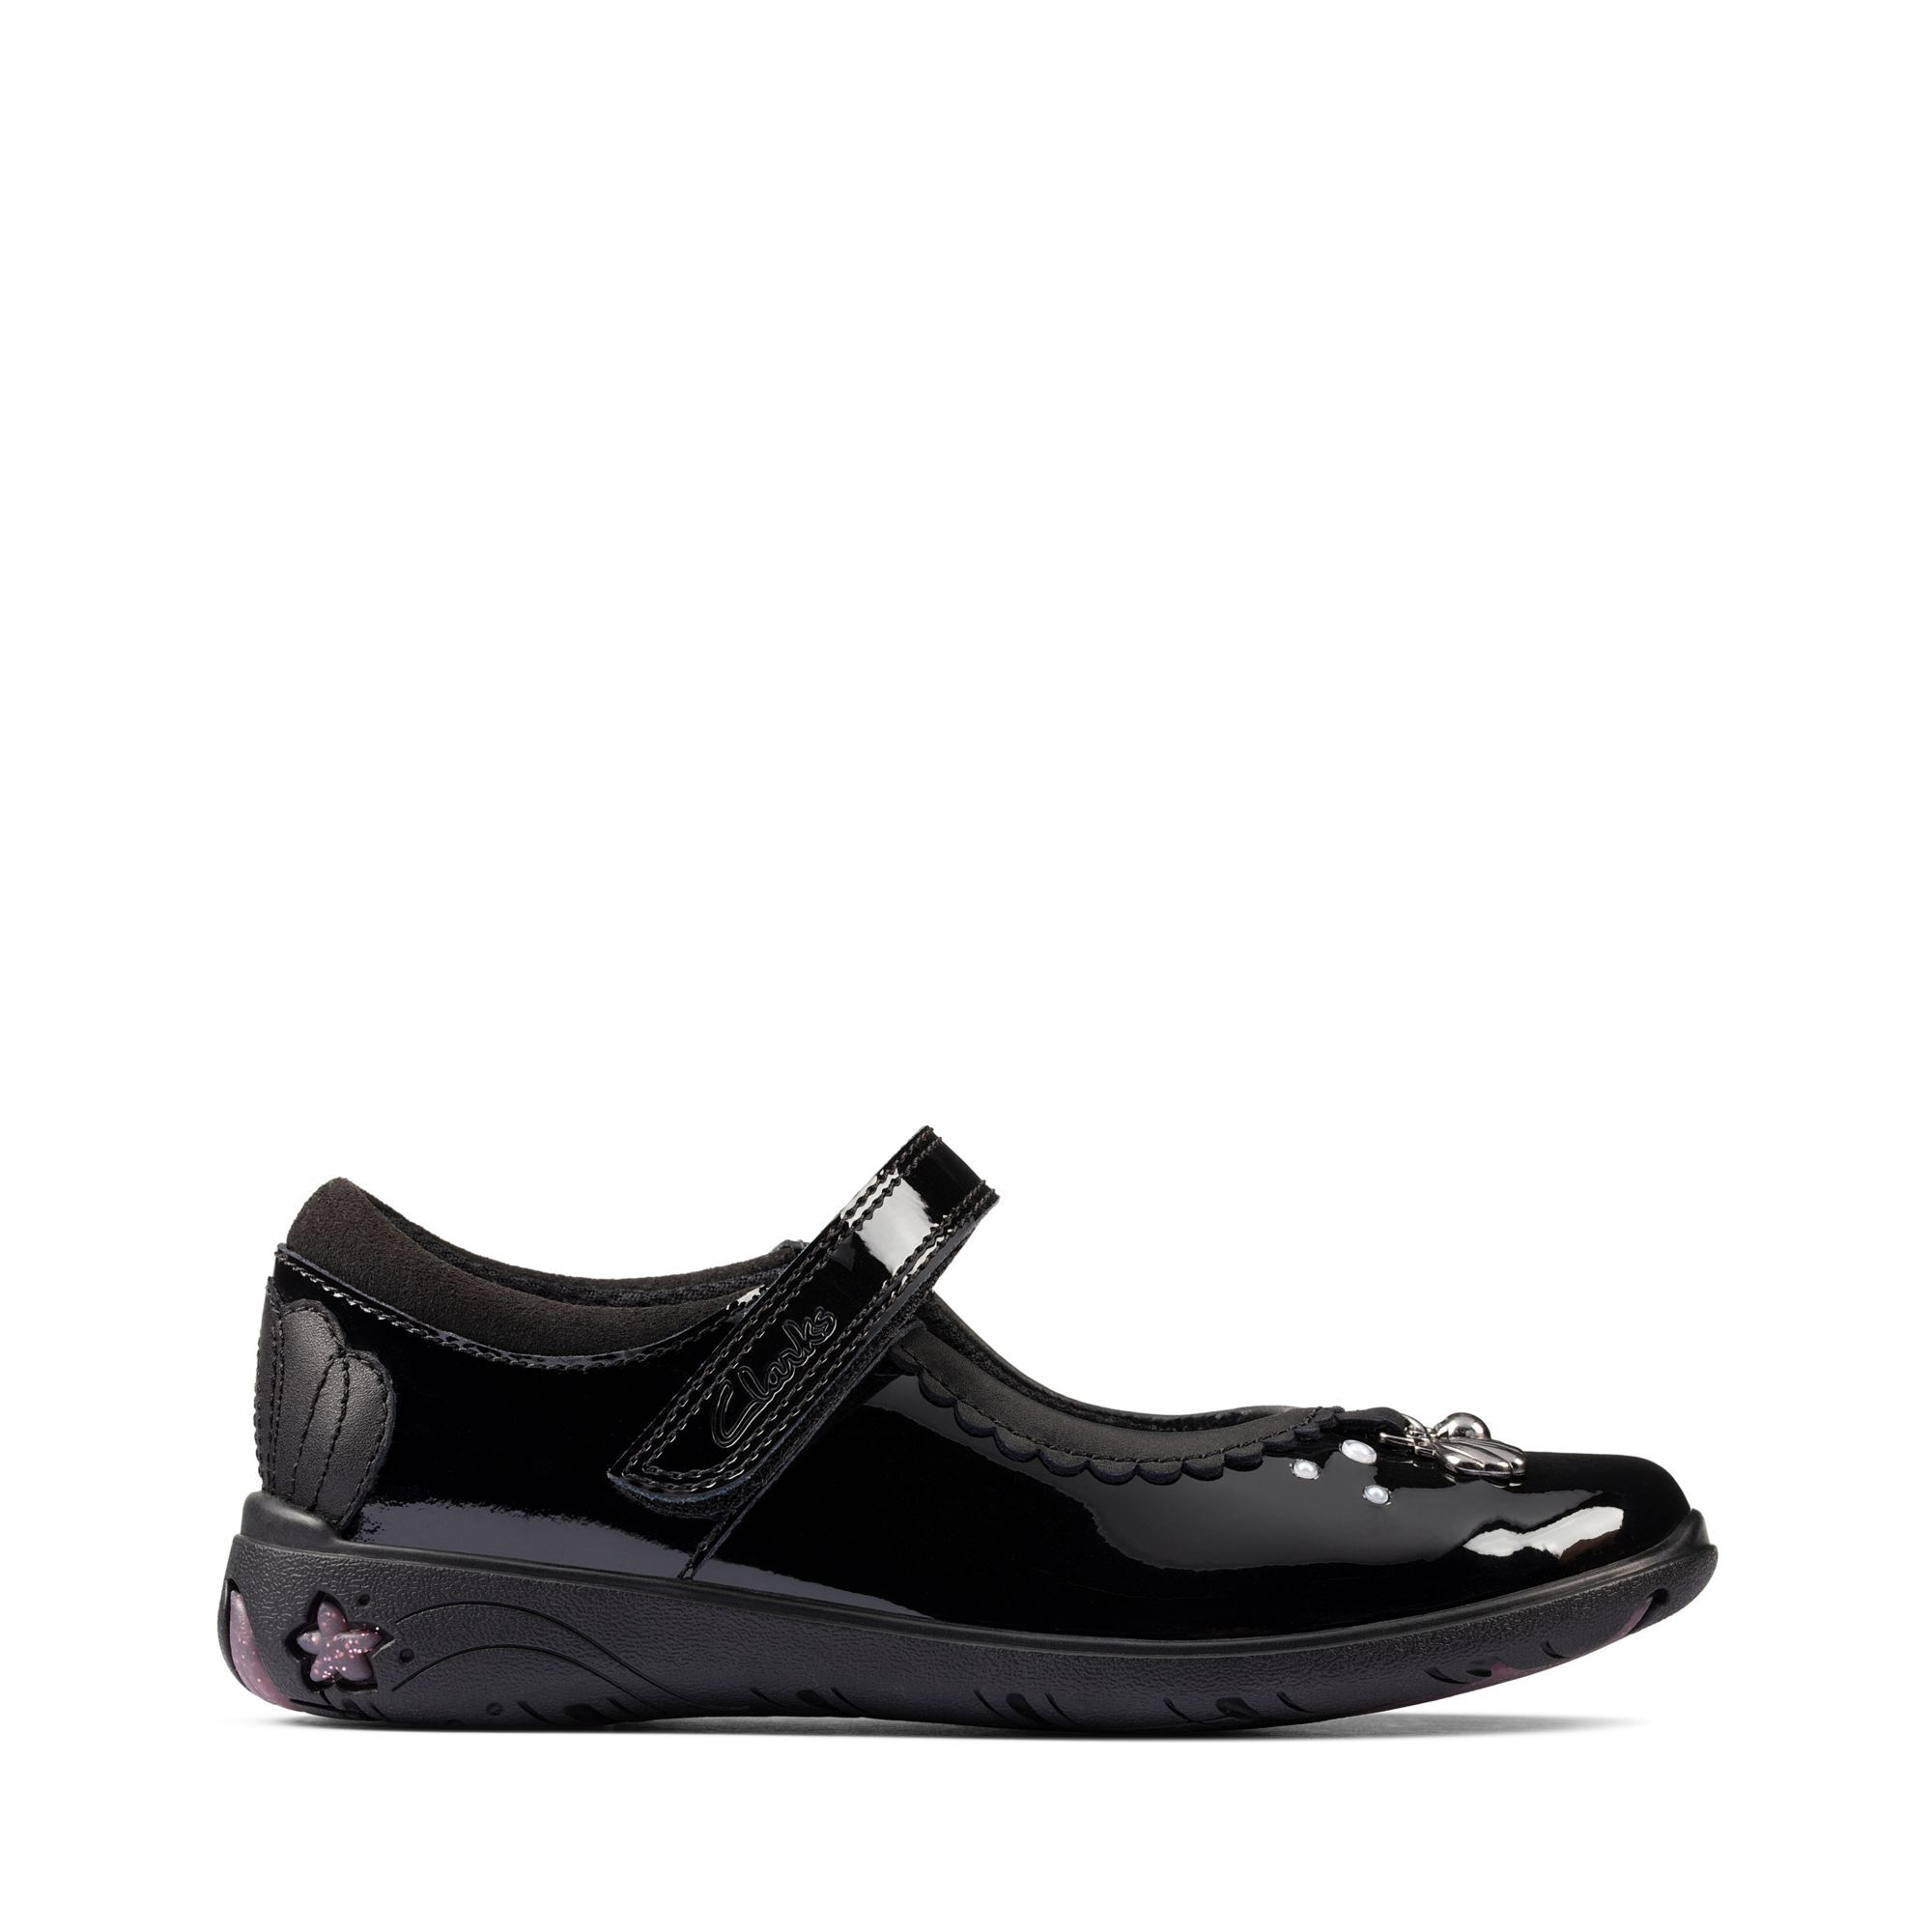 Kids' Latest Collection | Clarks